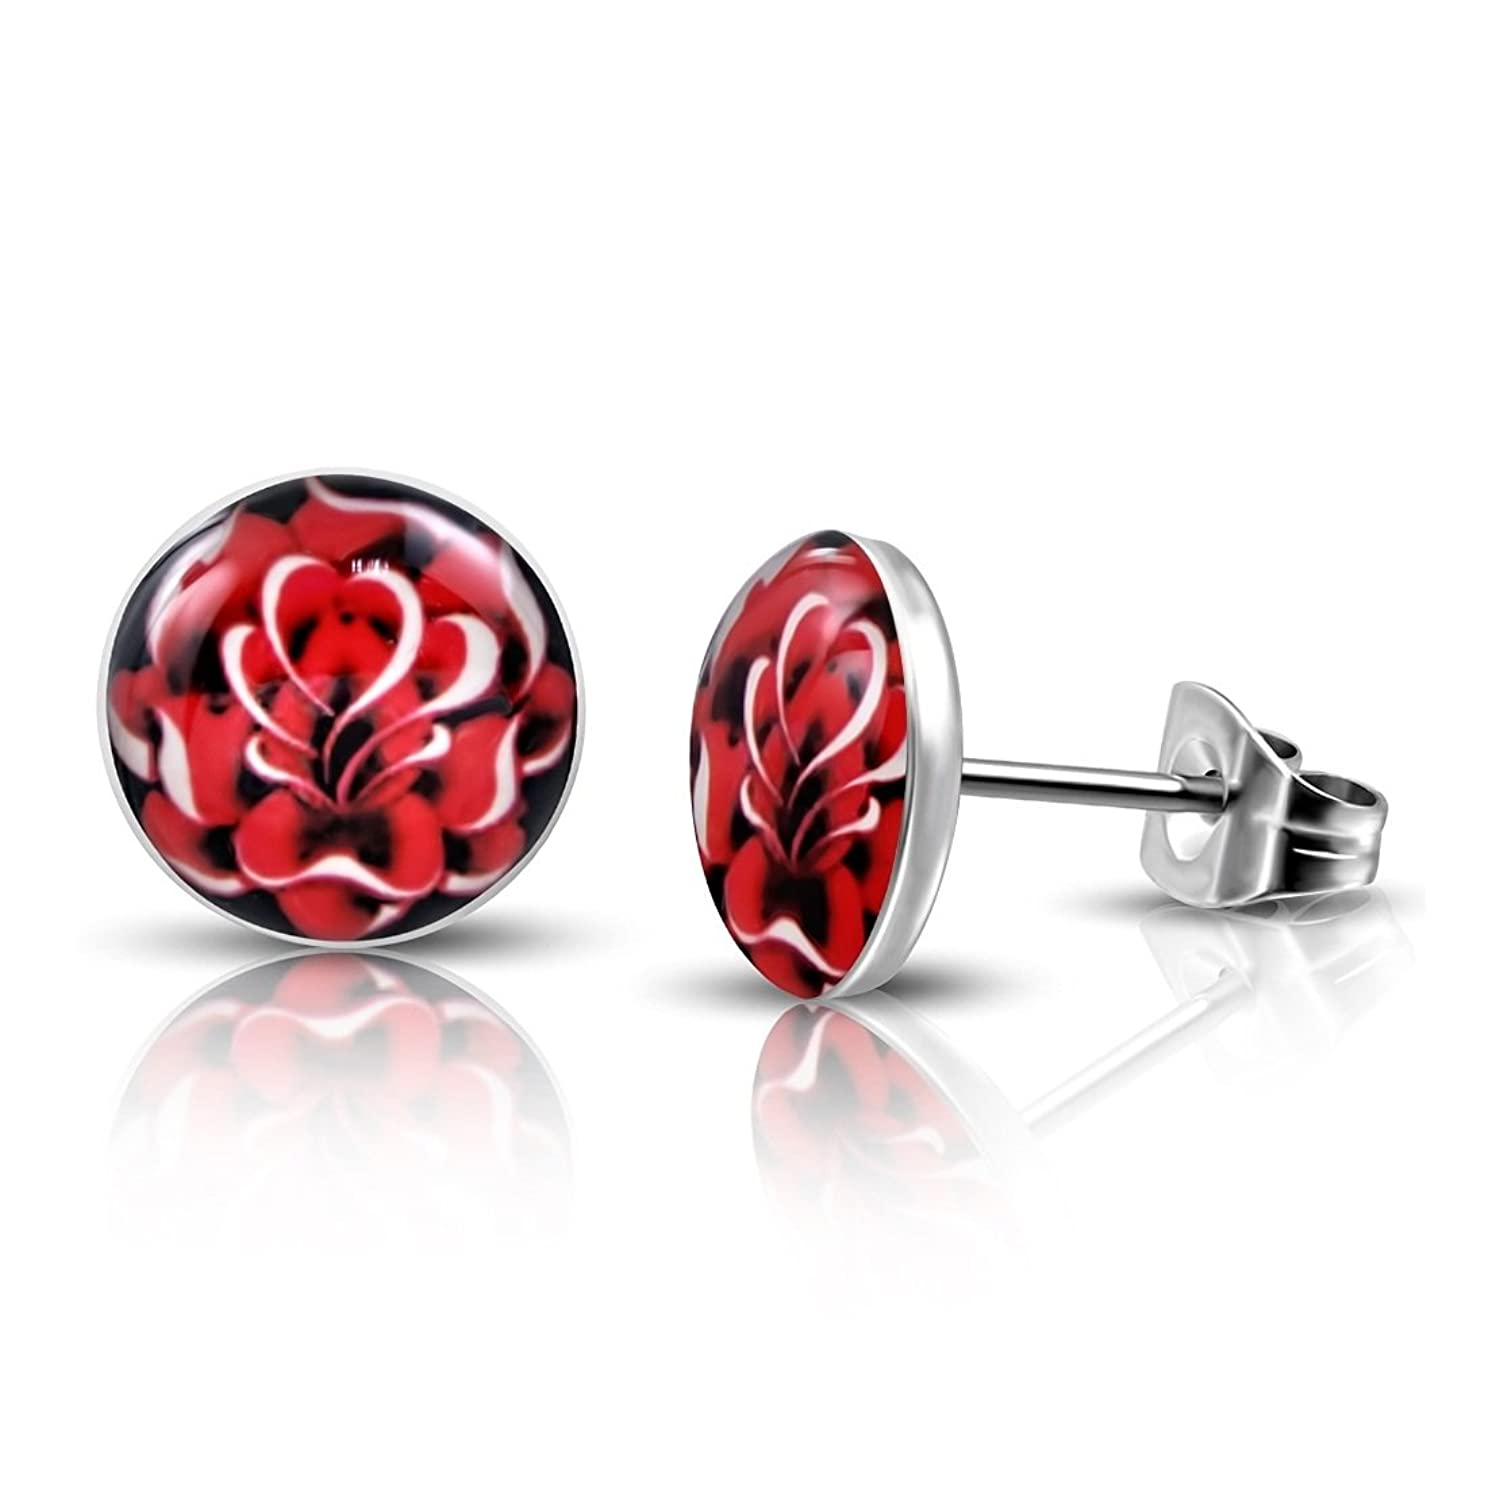 Stainless Steel 4 Color Rose Flower Circle Stud Earrings (pair)